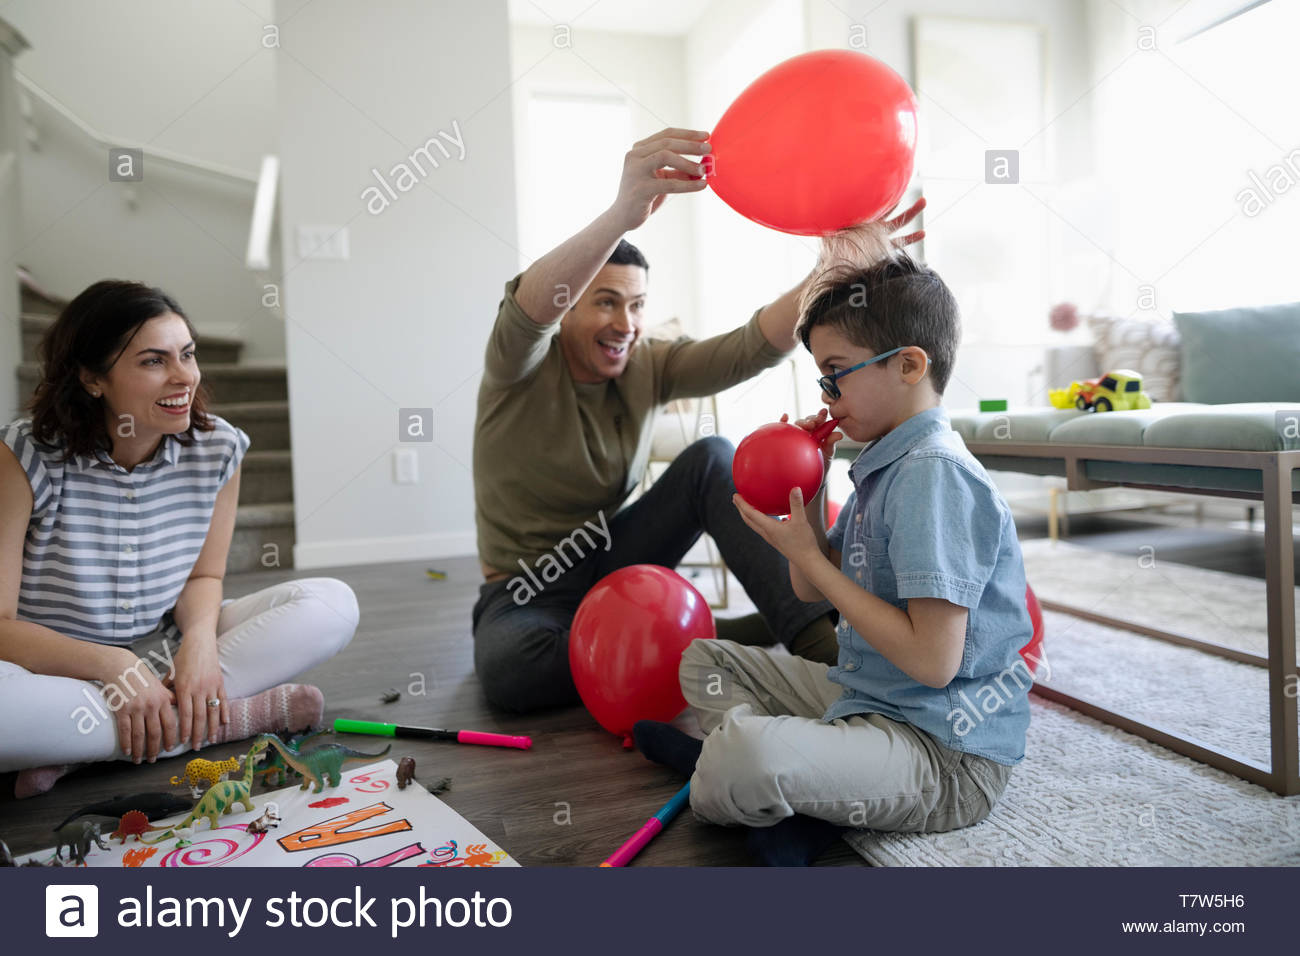 Playful father with balloon creating static with son's hair - Stock Image